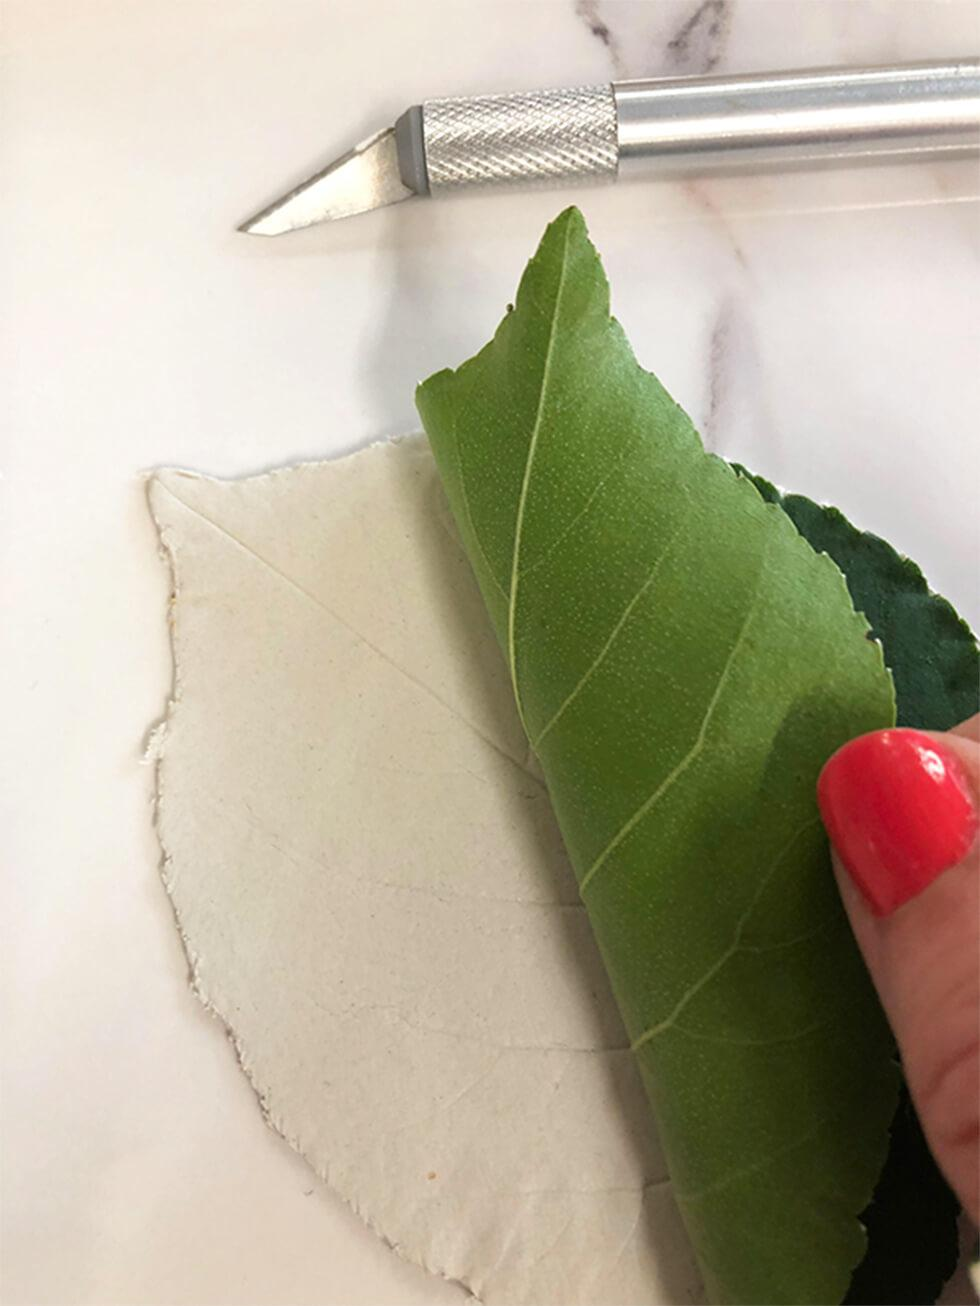 DIY leaf-shaped metallic trinket dish - Step 2 - Use a scalpel to trim away excess clay